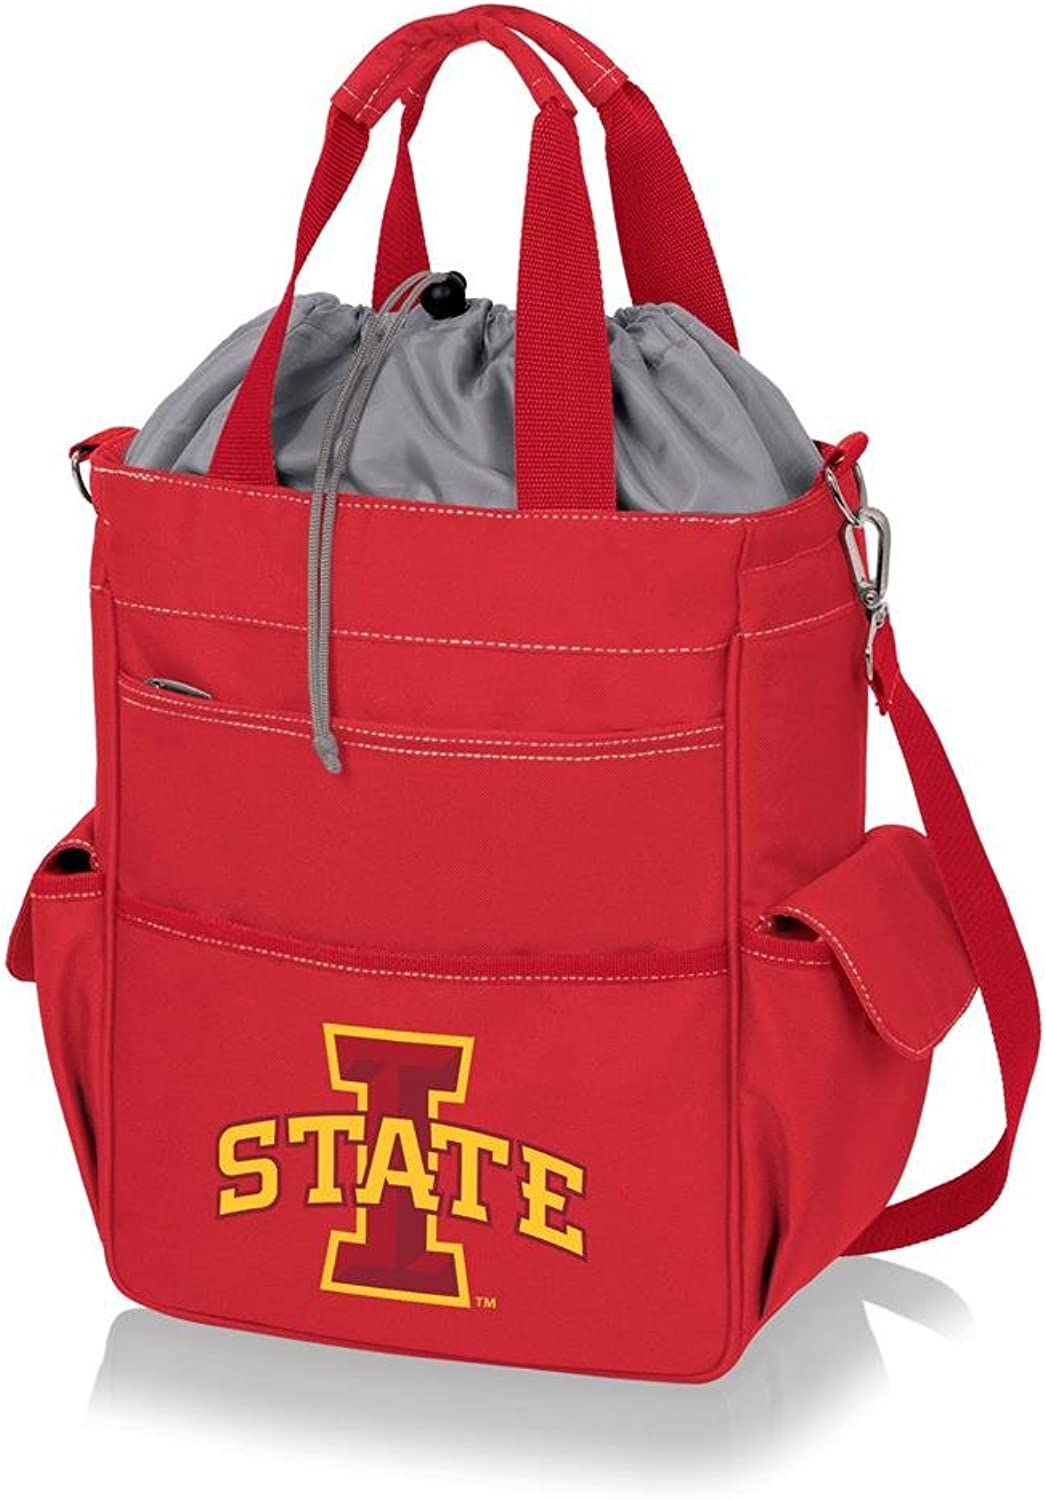 431829cb Picnic Time Iowa State Cyclones Digital Print Tote& 44; Red ...